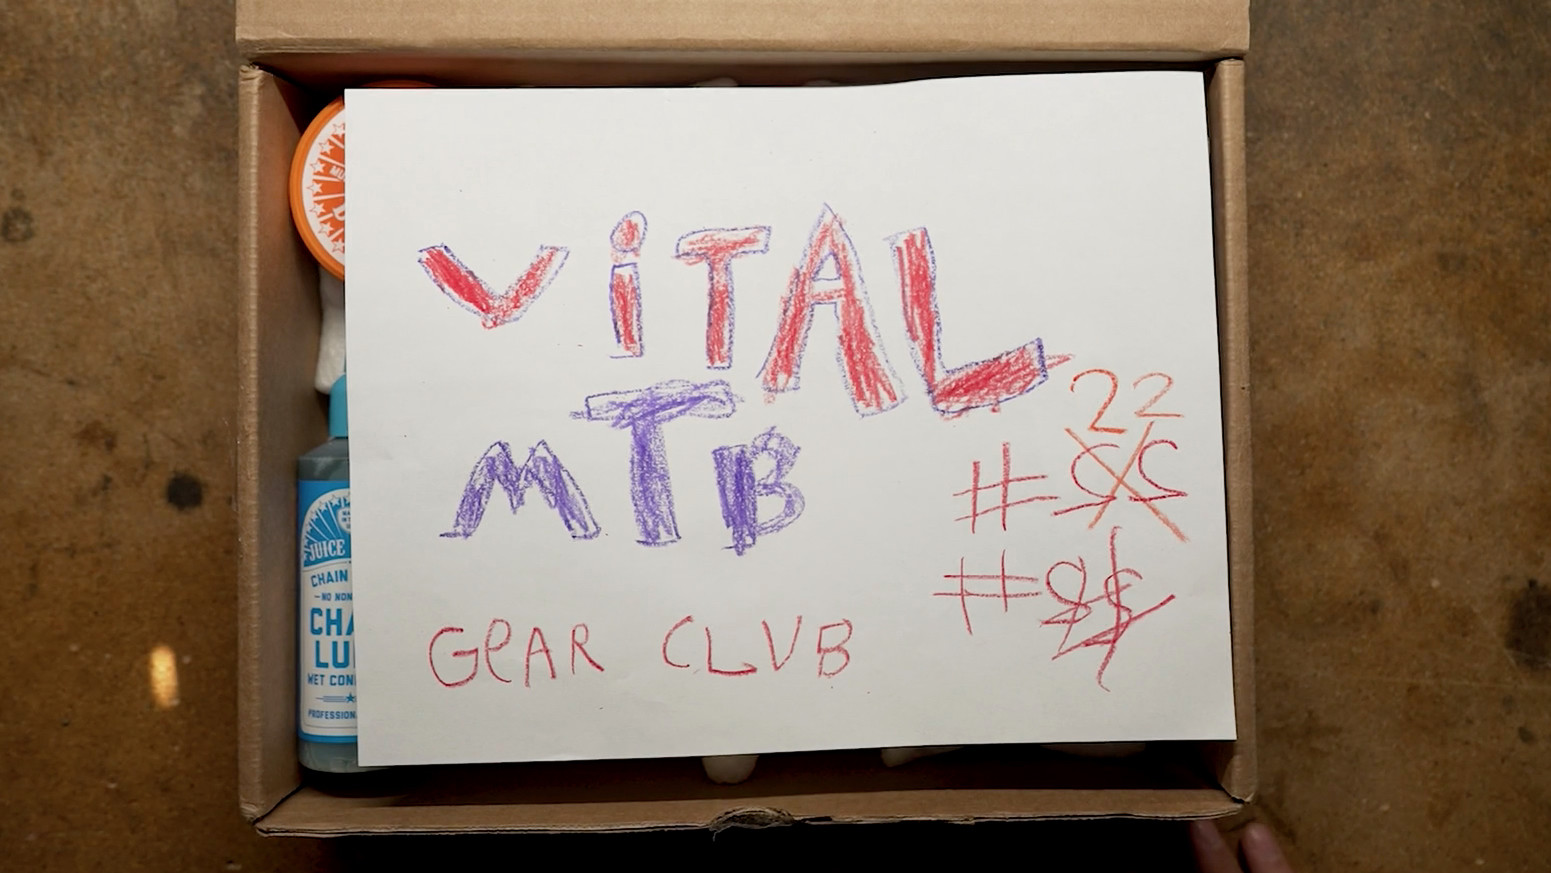 Vital MTB Gear Club Unboxing 22 - Our New Graphics Guy is Incredible!